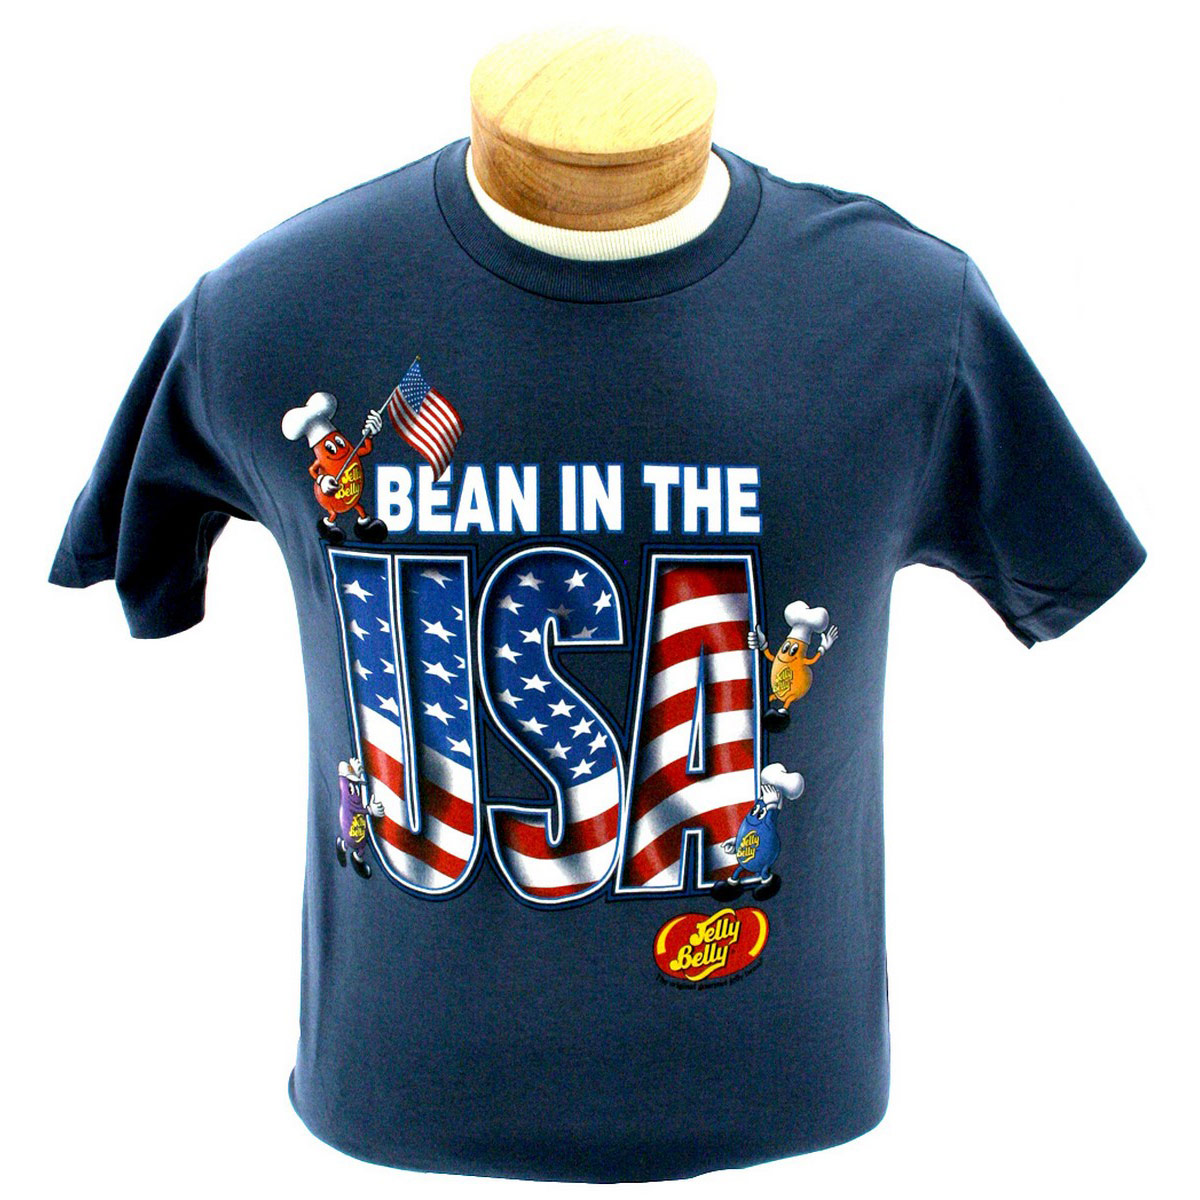 Bean in the USA T-shirt - Medium